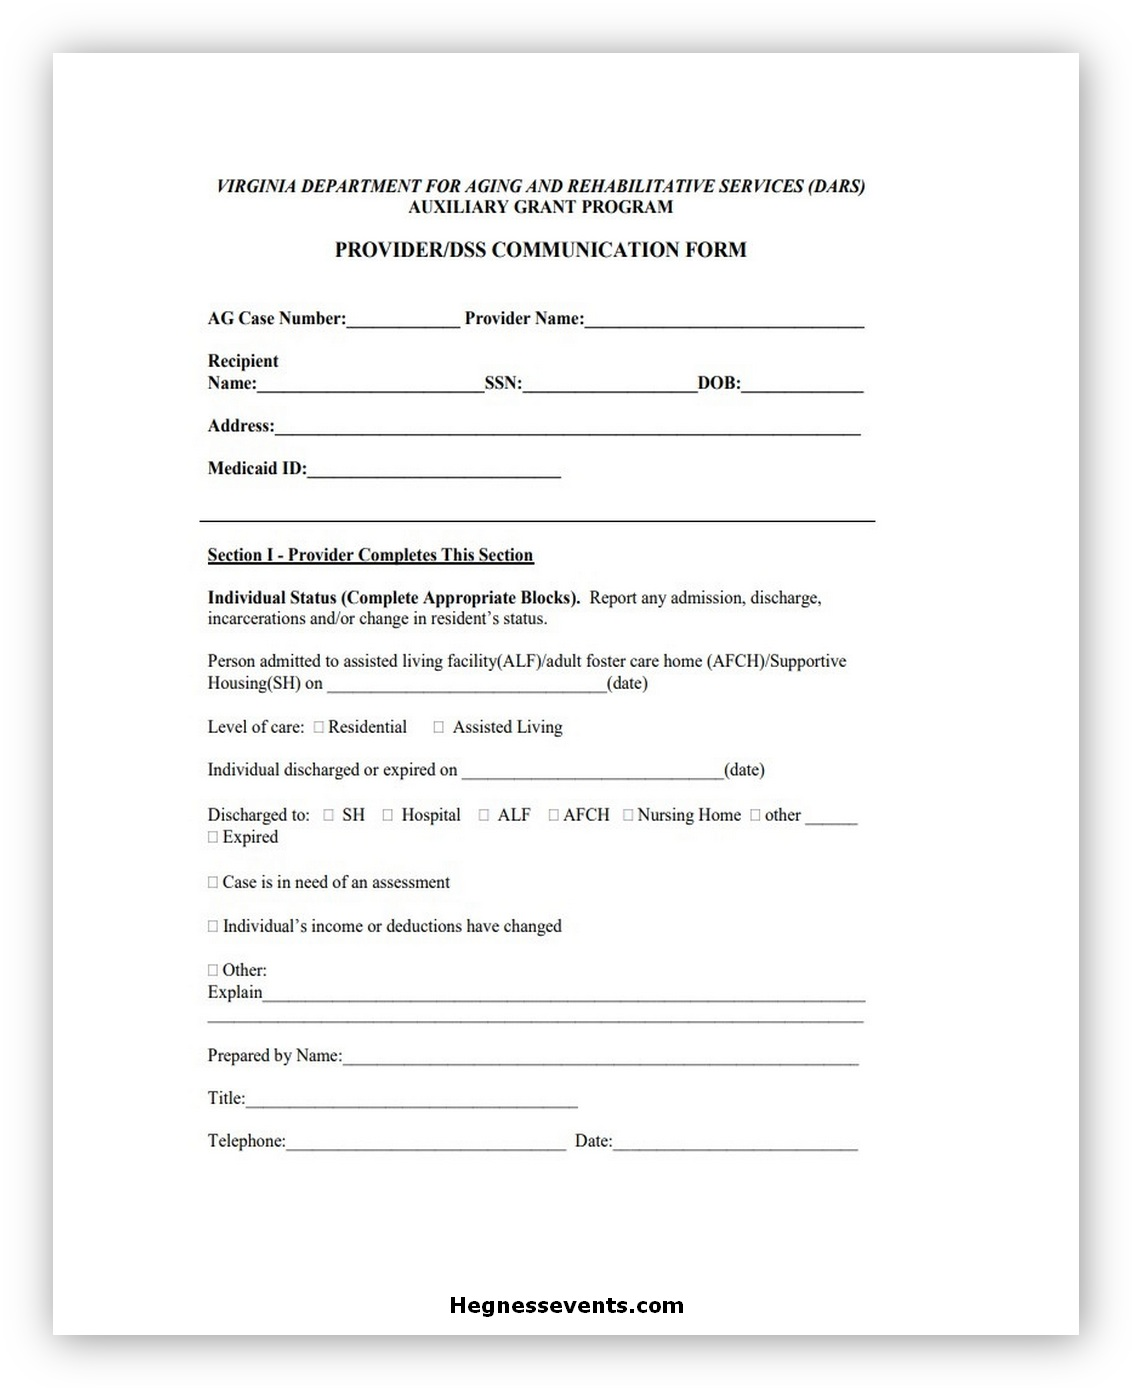 Providers Communication Form